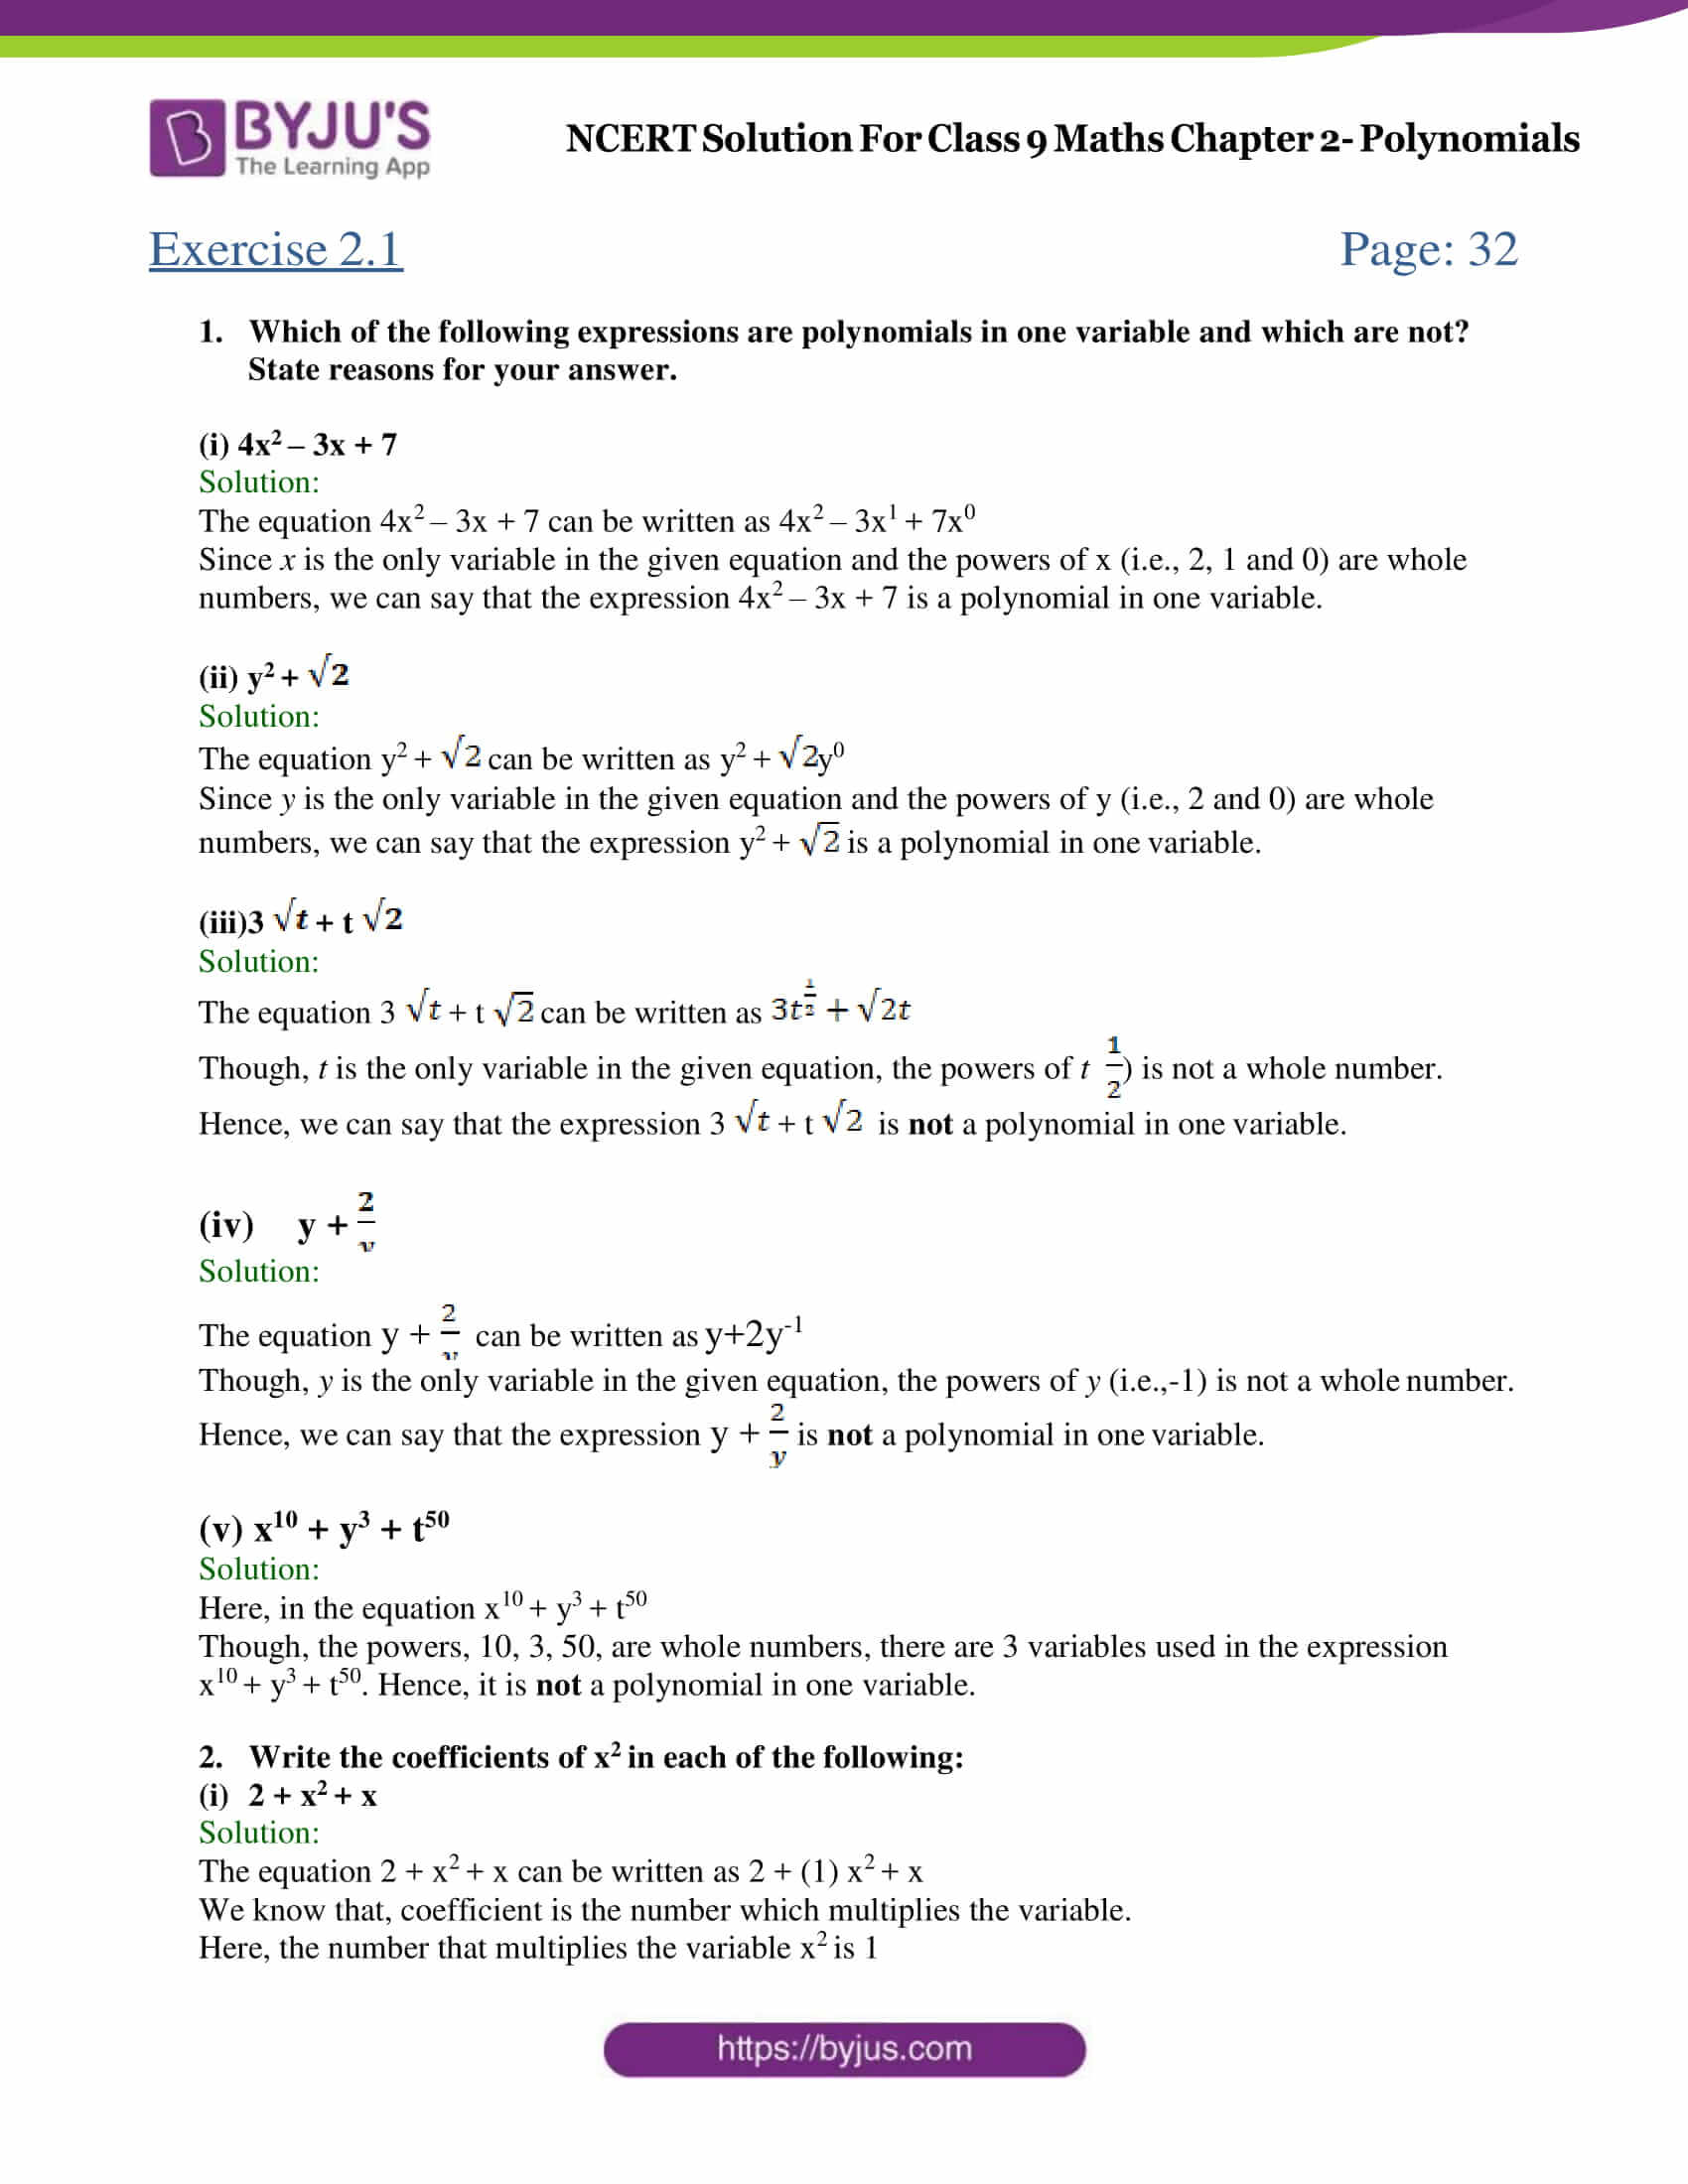 NCERT Solutions for Class 9 Maths Exercise 2 1 Chapter 2